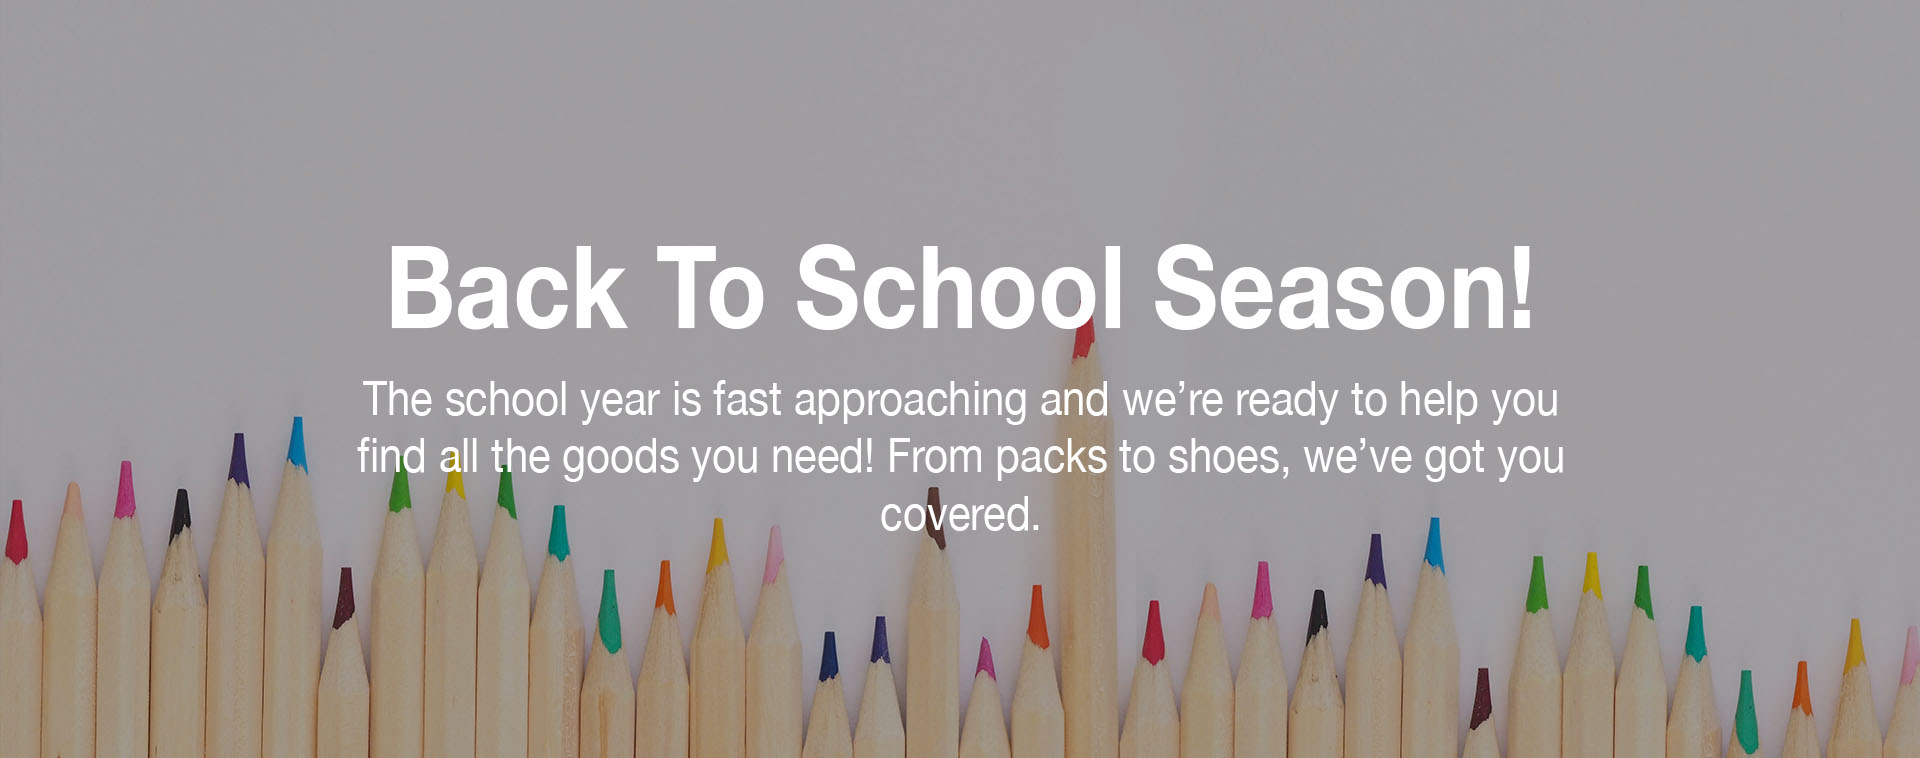 Mountain High Outfitters - Back To School